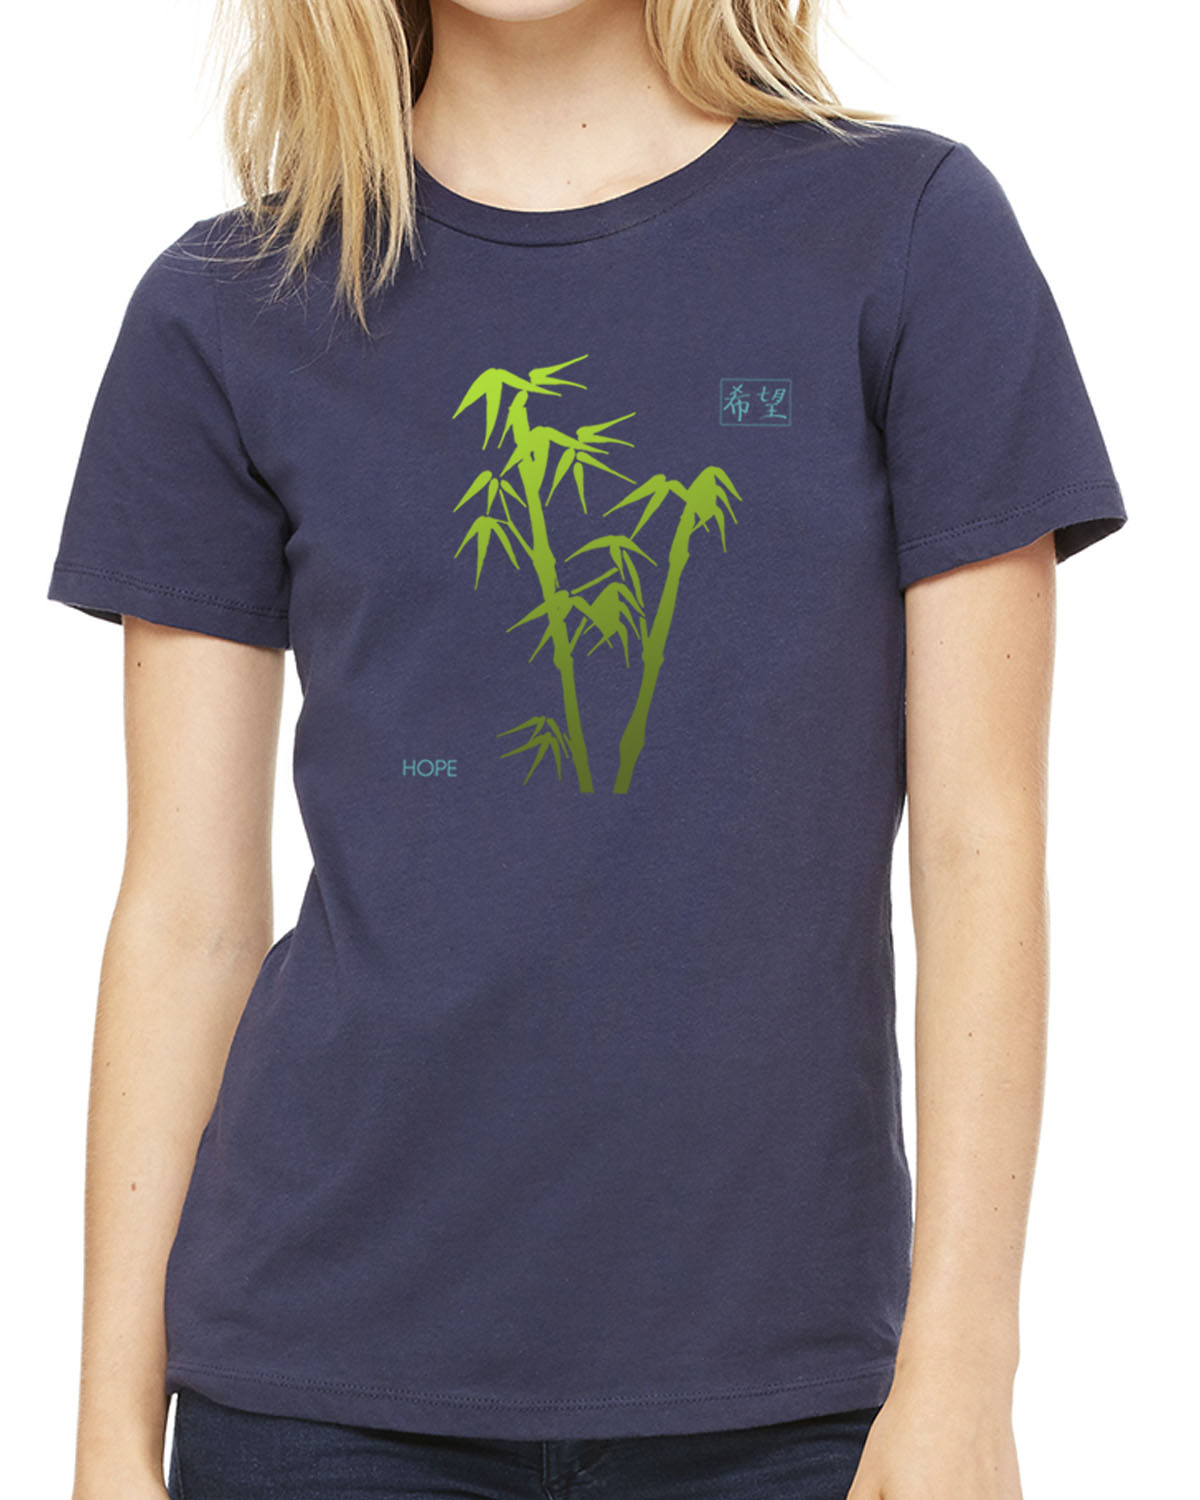 Women's short sleeve t-shirt (navy)